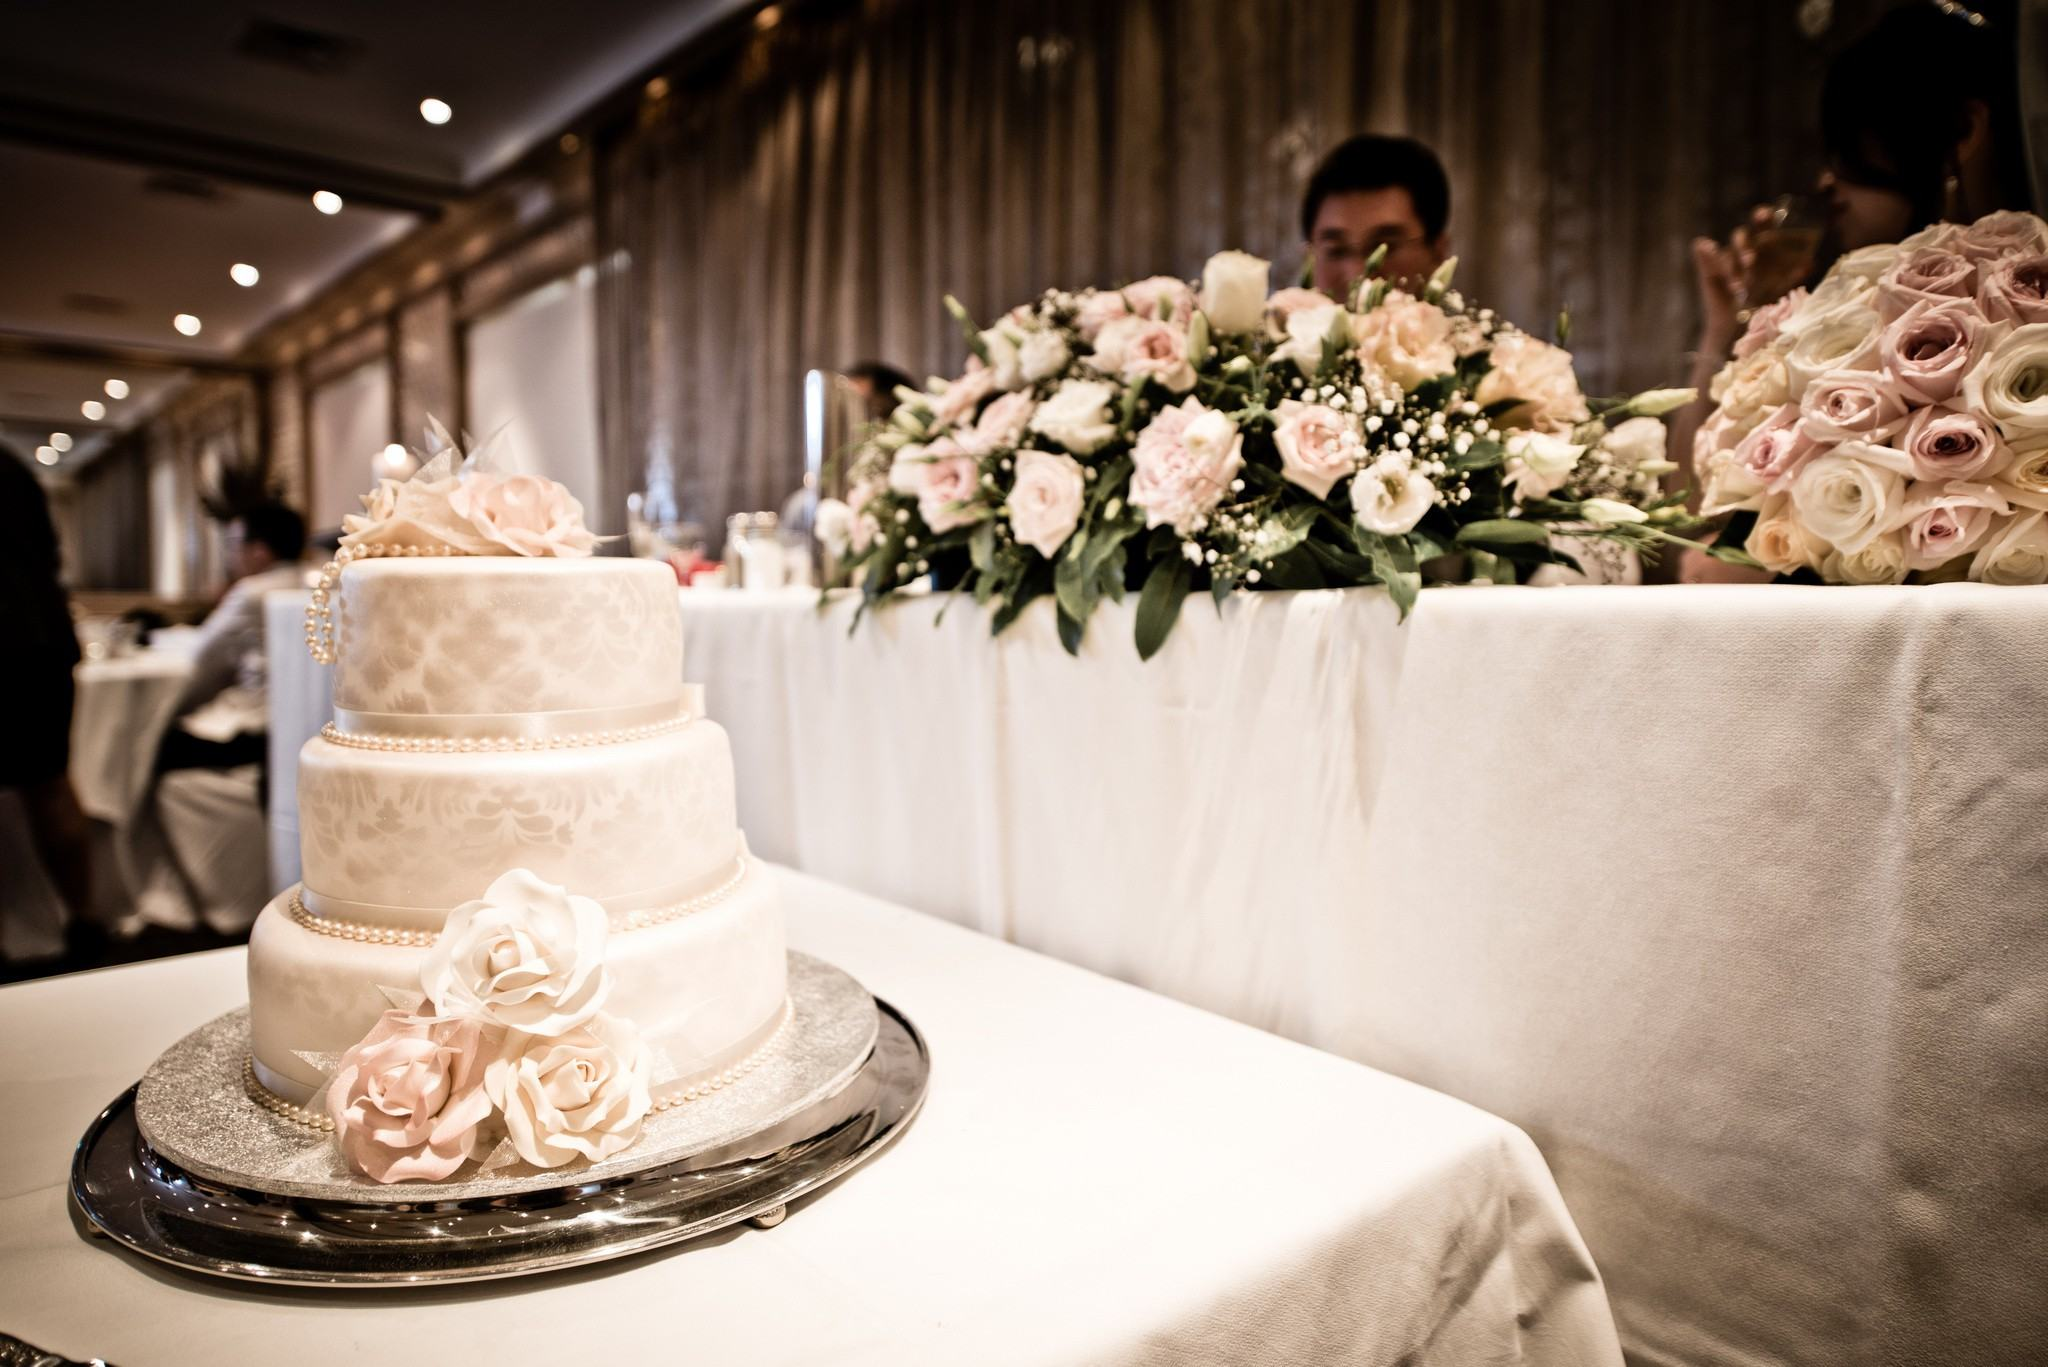 Photo of a decorated wedding cake on a silver platter at a wedding function